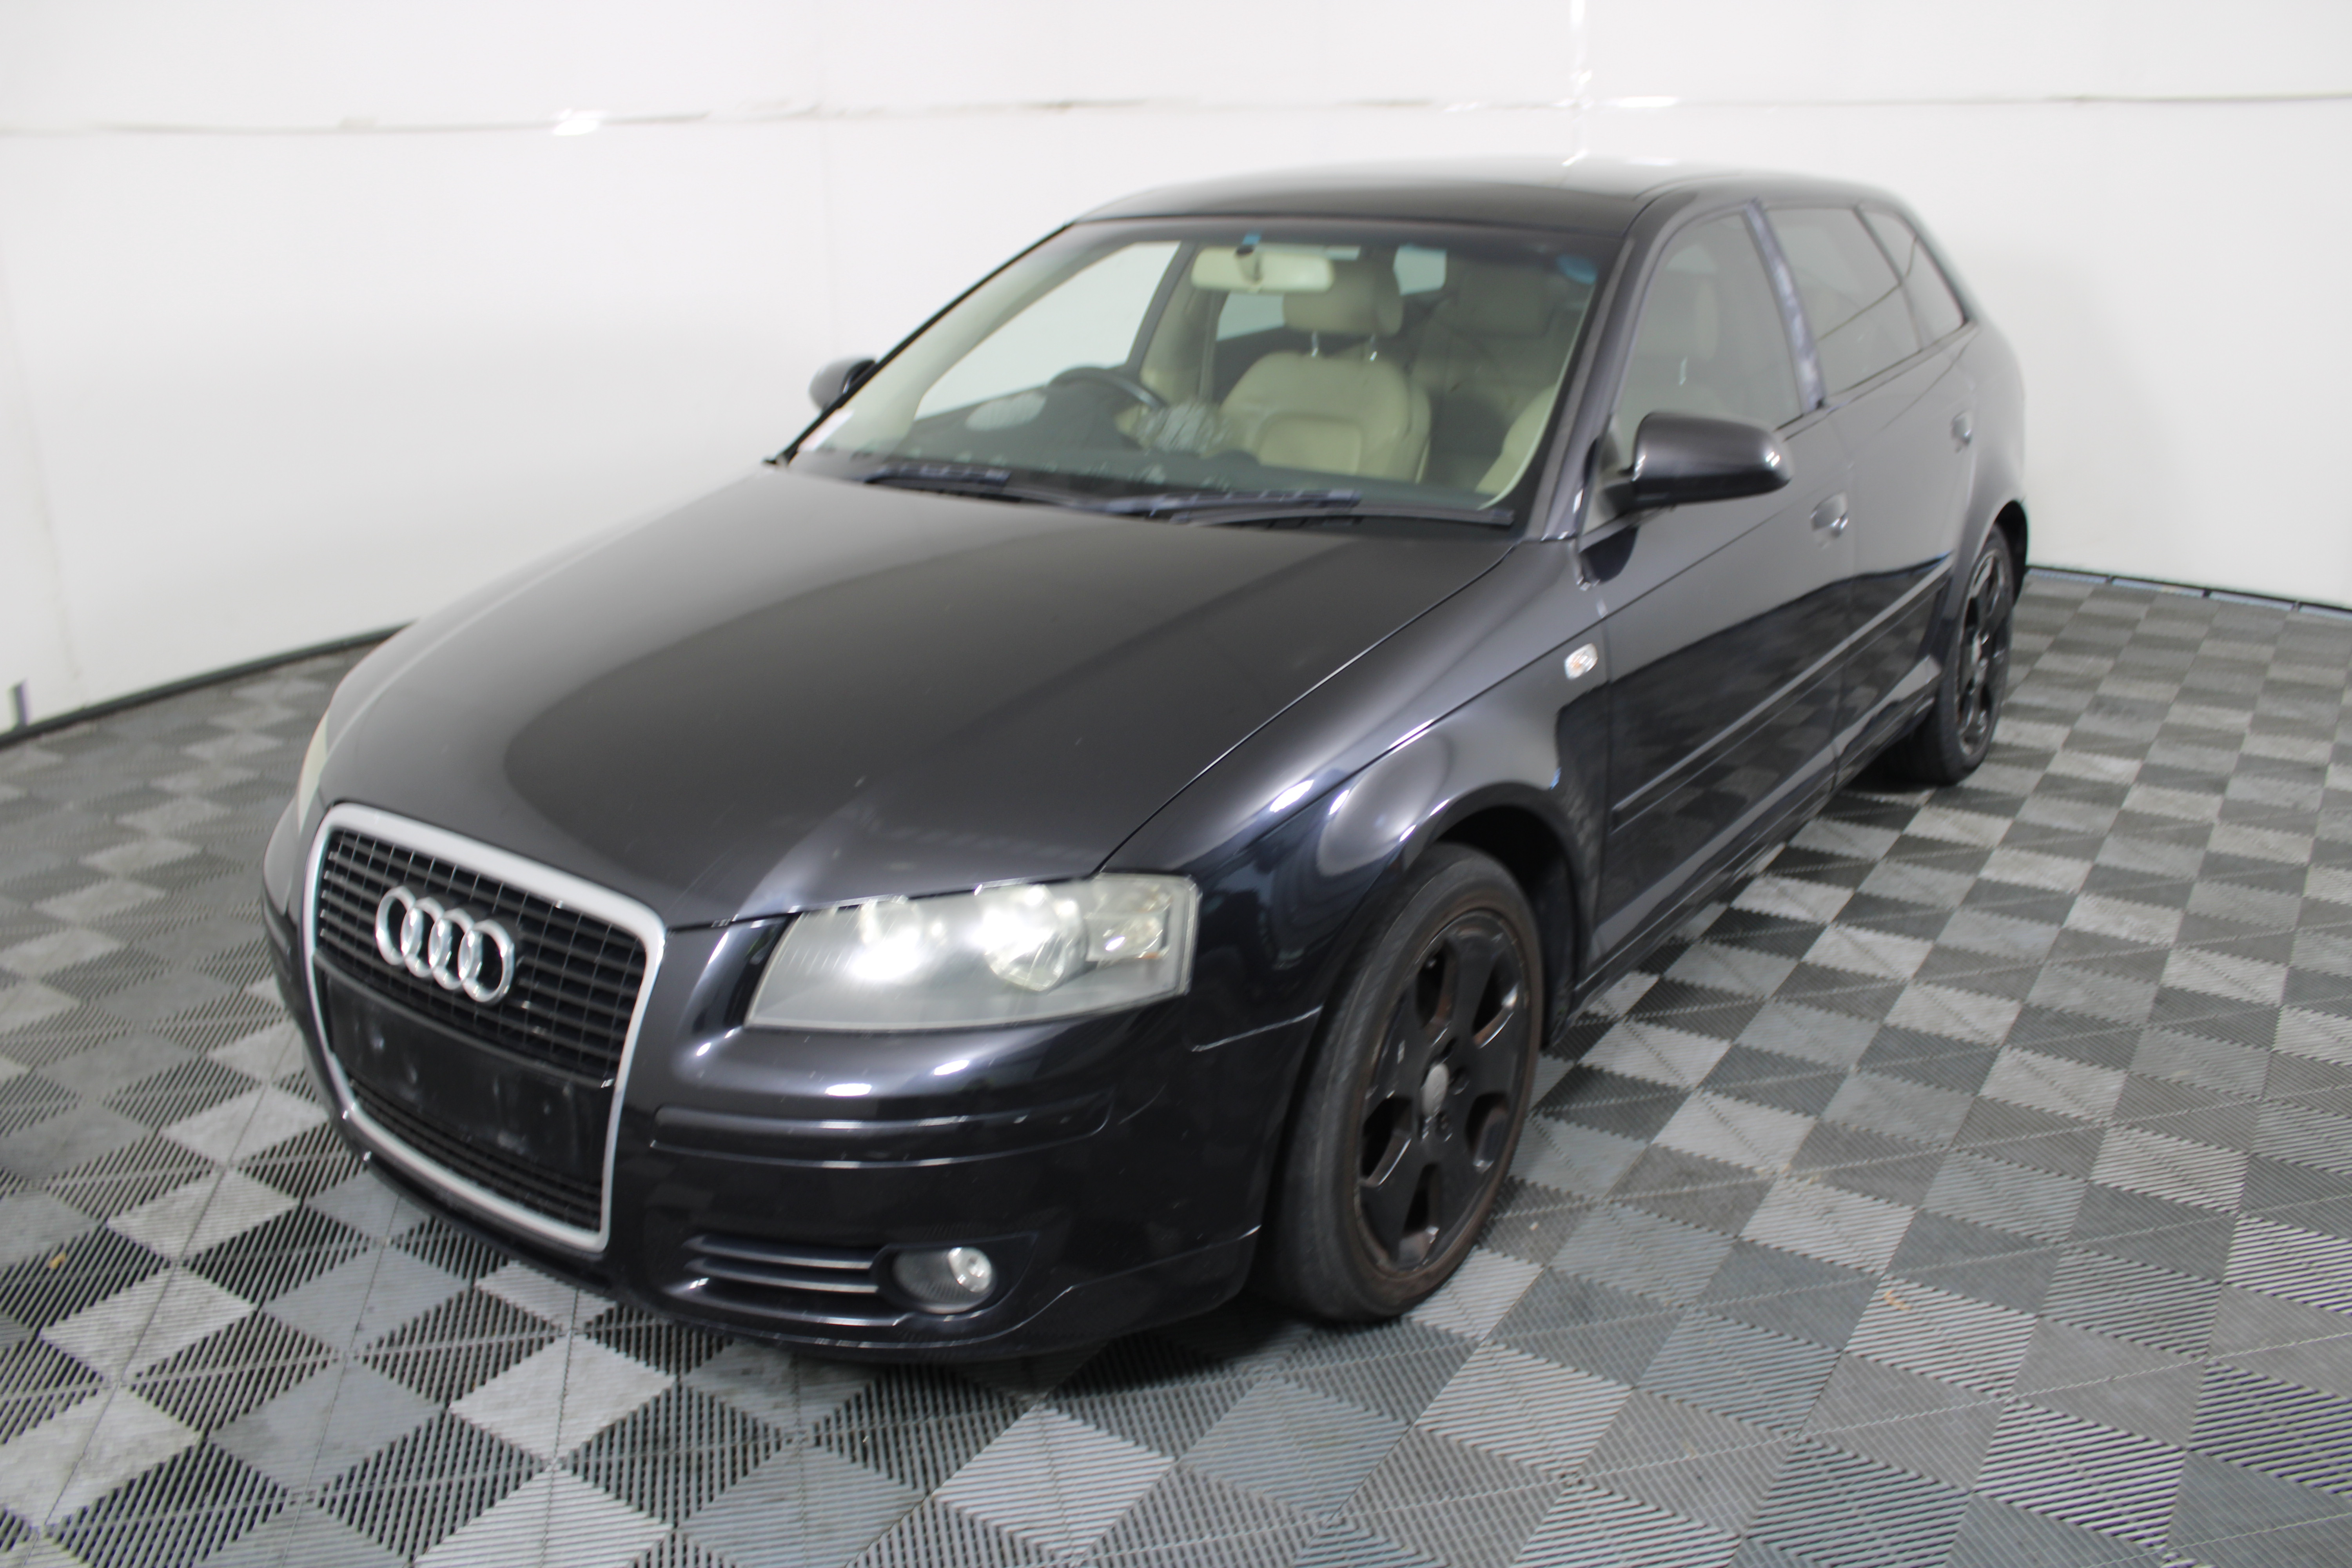 2005 Audi A3 2.0 FSI Ambition 8P Automatic Hatchback